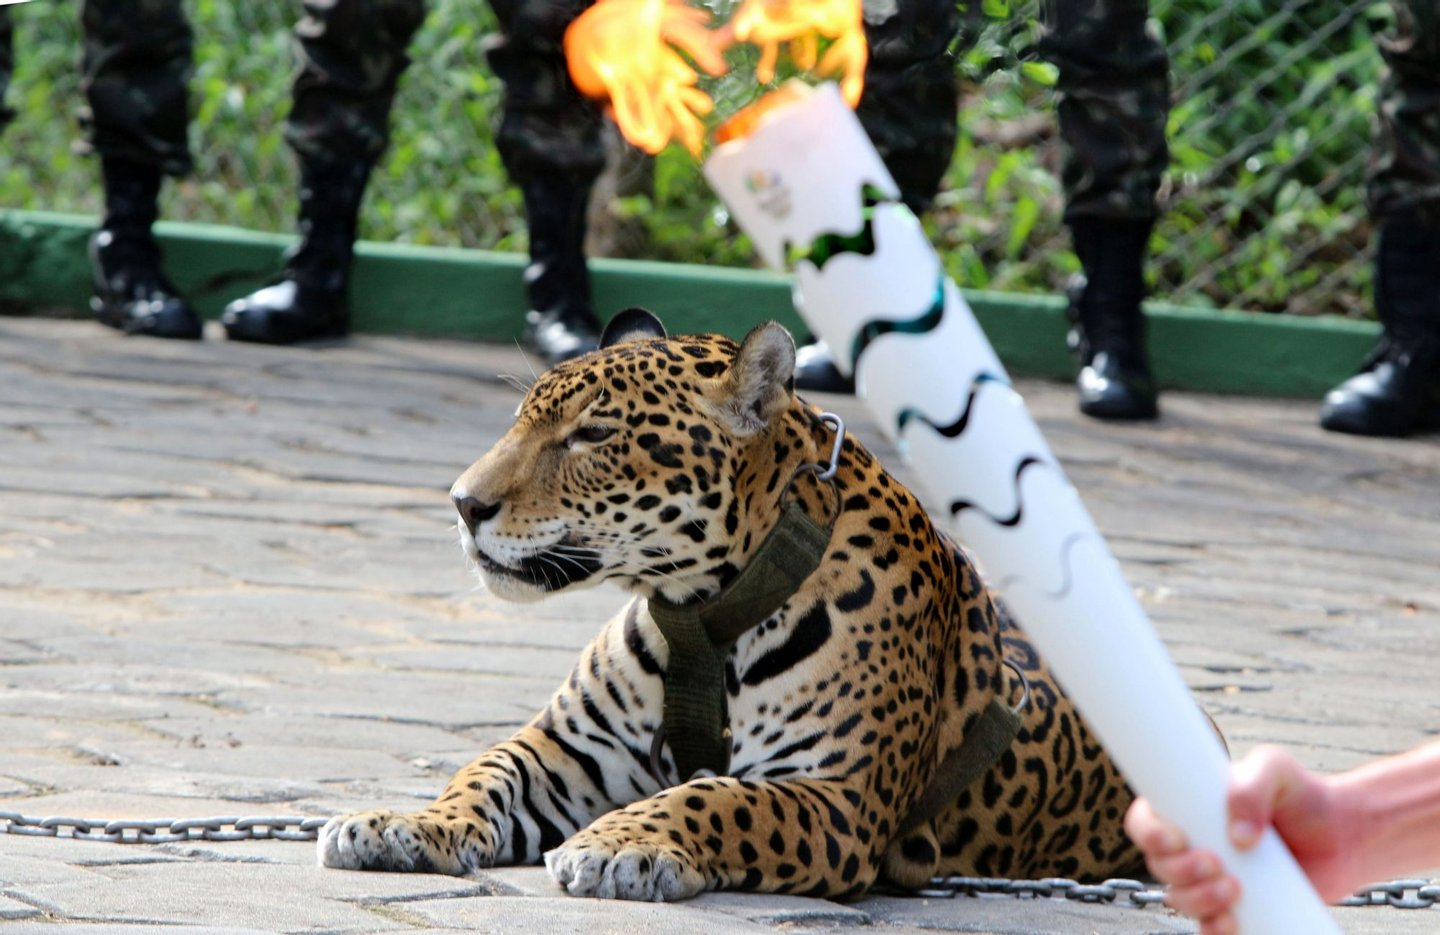 The Olympic Torch, hold by an athlete, is seen by a jaguar --symbol of Amazonia-- during a ceremony in Manaus, northern Brazil, on June 20, 2016. The jaguar, who was named Juma and lived in the local zoo, had to be shot dead by soldiers shortly after the ceremony when he escaped and attacked a veterinarian despite having been hit four times with tranquilizing darts. / AFP / Diario do Amazonas / Jair Araujo (Photo credit should read JAIR ARAUJO/AFP/Getty Images)